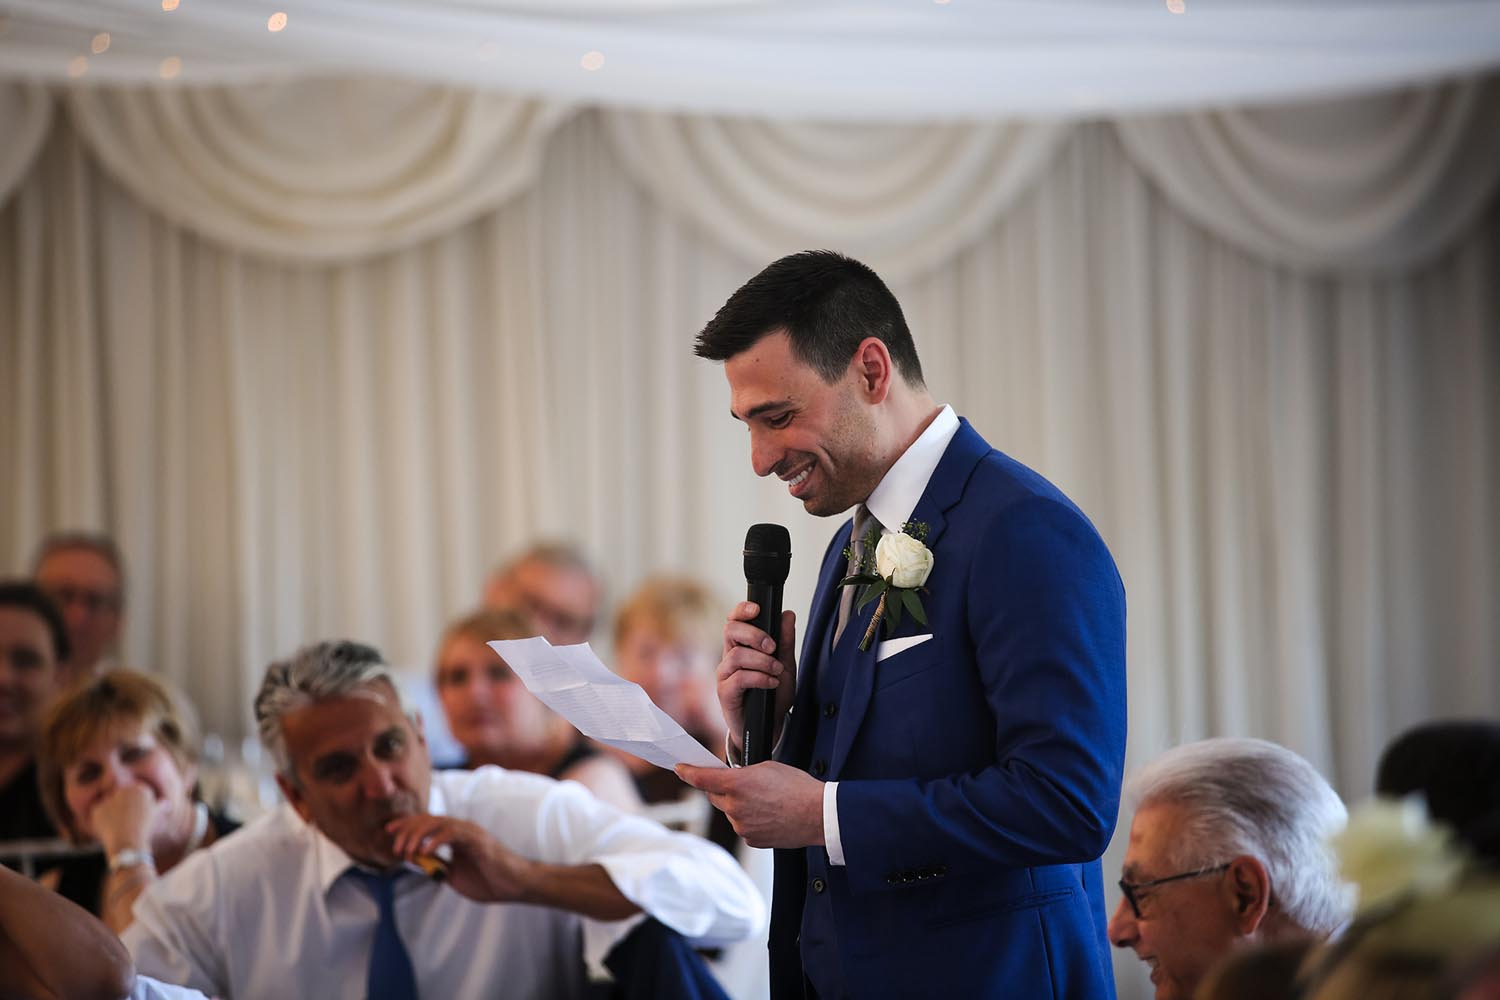 Best Man giving his speech